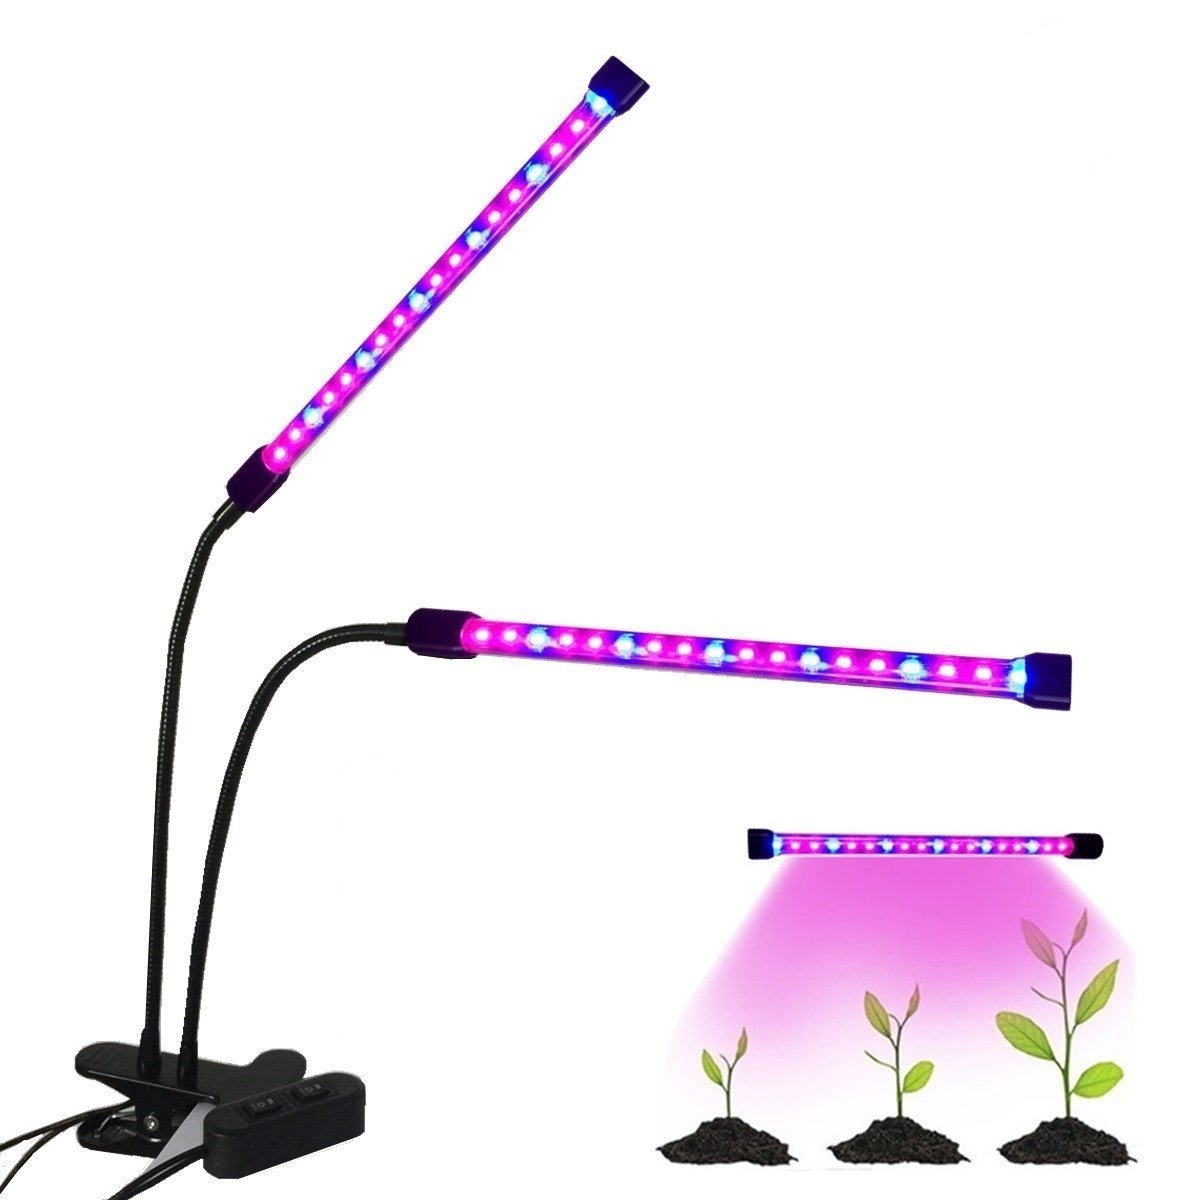 Dual Head LED Plant Grow Light,Kyerivs USB Clip-On 12W 2 Dimmable Level 36 LEDs Red+Blue 24Reds&12Blues Grow Lamp Bulbs with Flexible 360 Degree Gooseneck for Indoor Plants Office Computers Desk Hydro